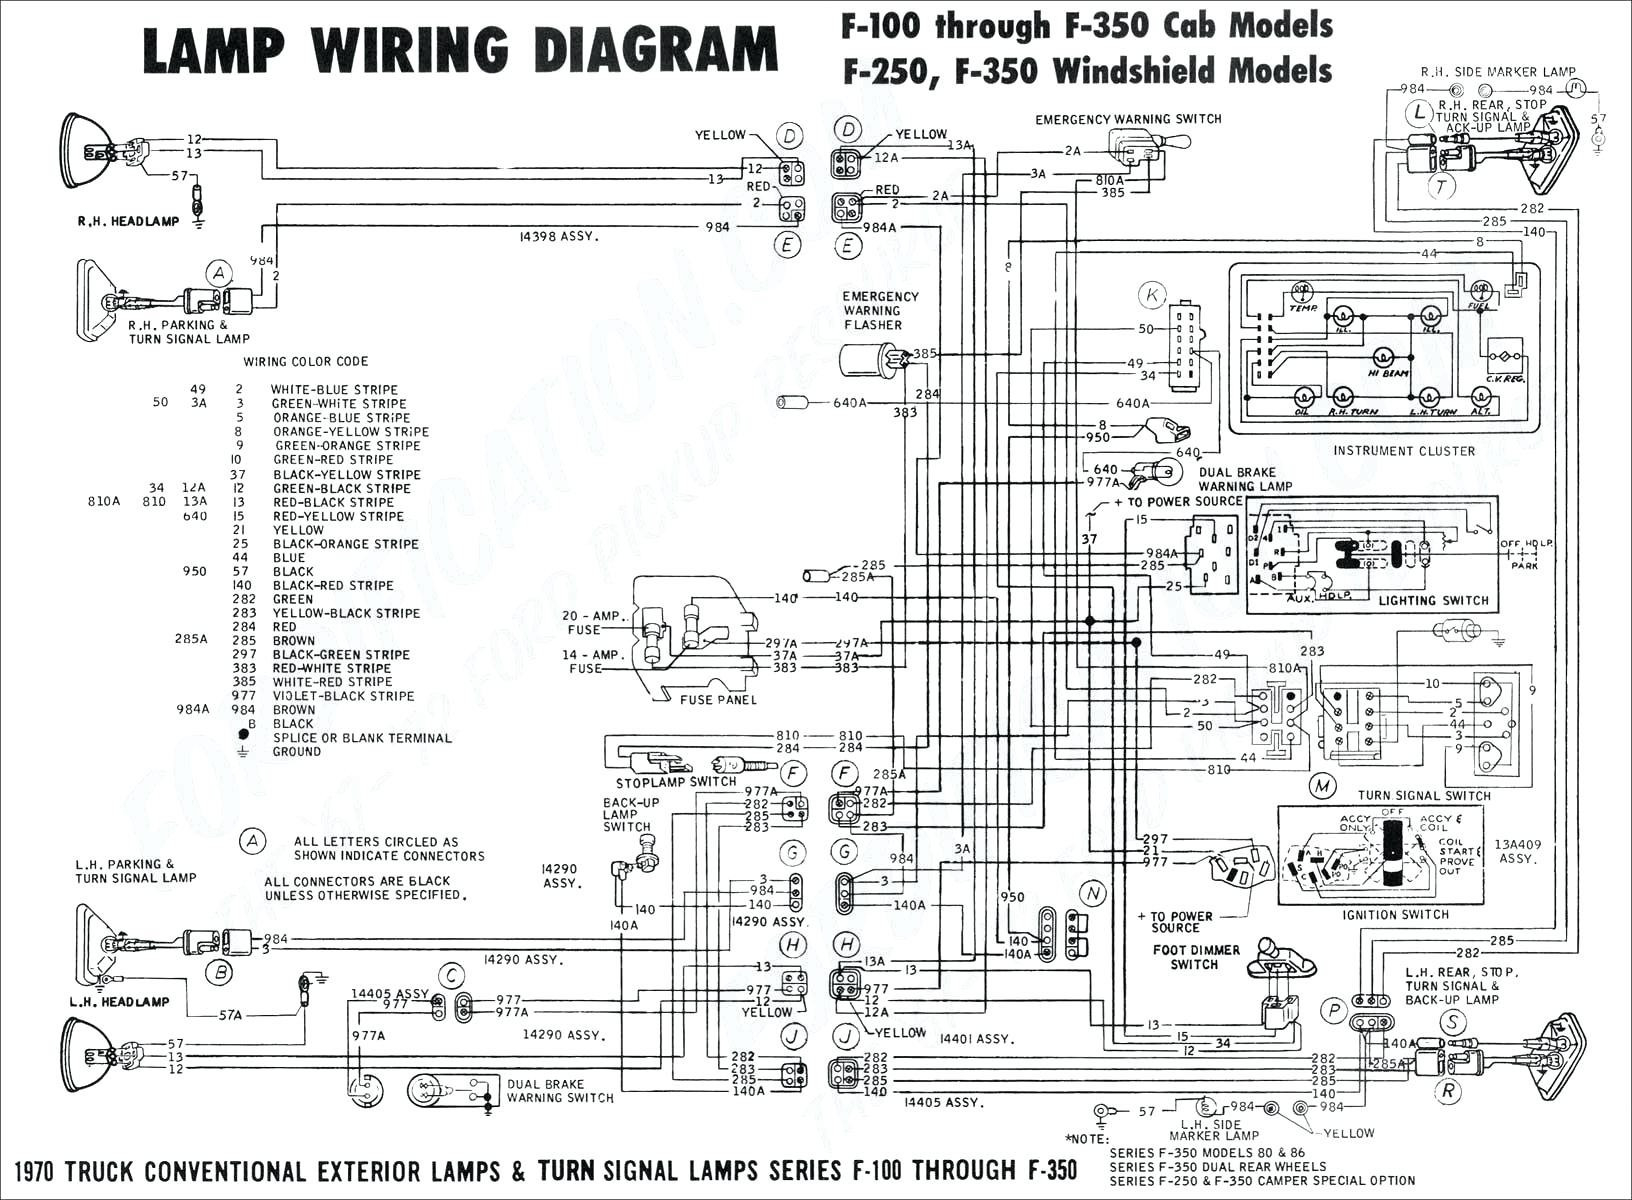 2009 Nissan Quest Ke Light Wiring Diagram | Wiring Diagram on